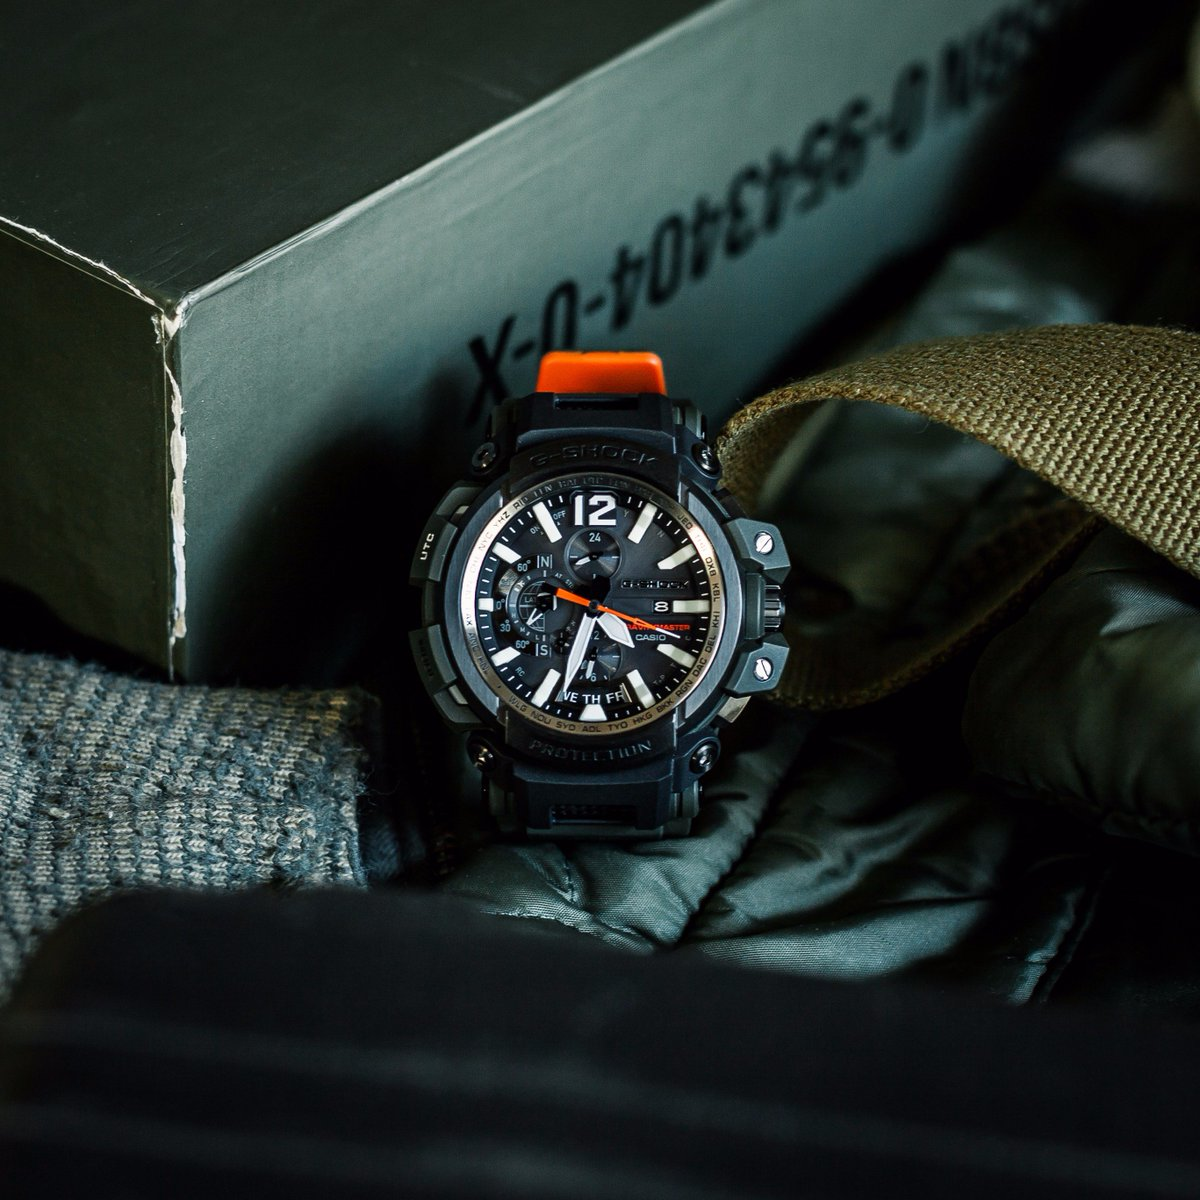 Casio G-Shock Gravitymaster GPW-2000-3AJF Equipped GPS Hybrid Resin + Carbon Machtwatch